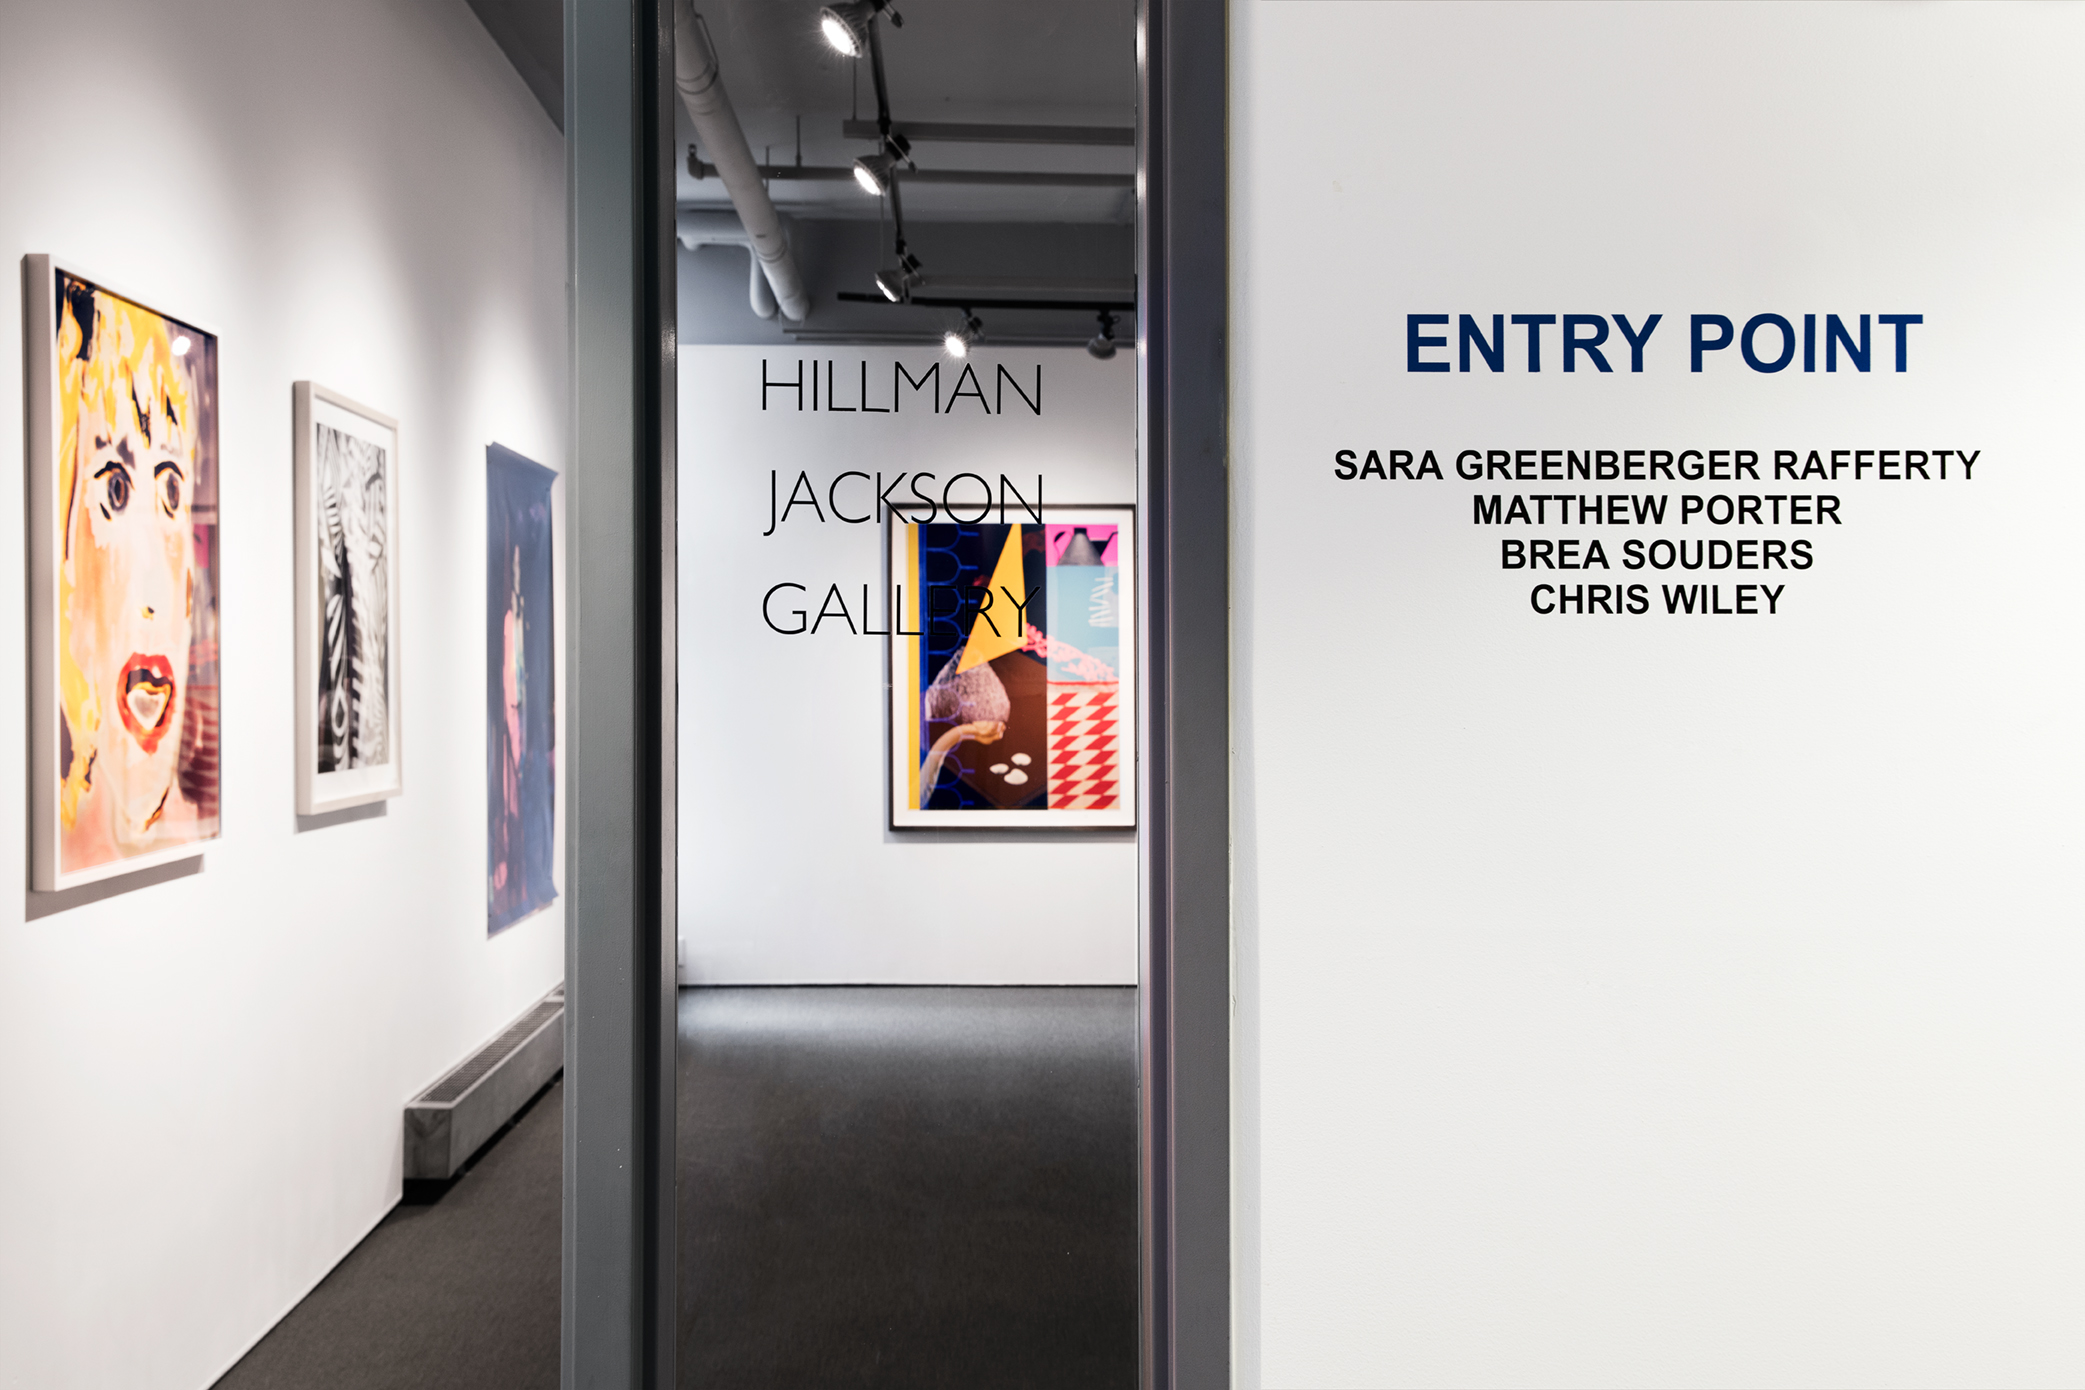 Entry Point Exhibition Now Showing at Hillman-Jackson Gallery